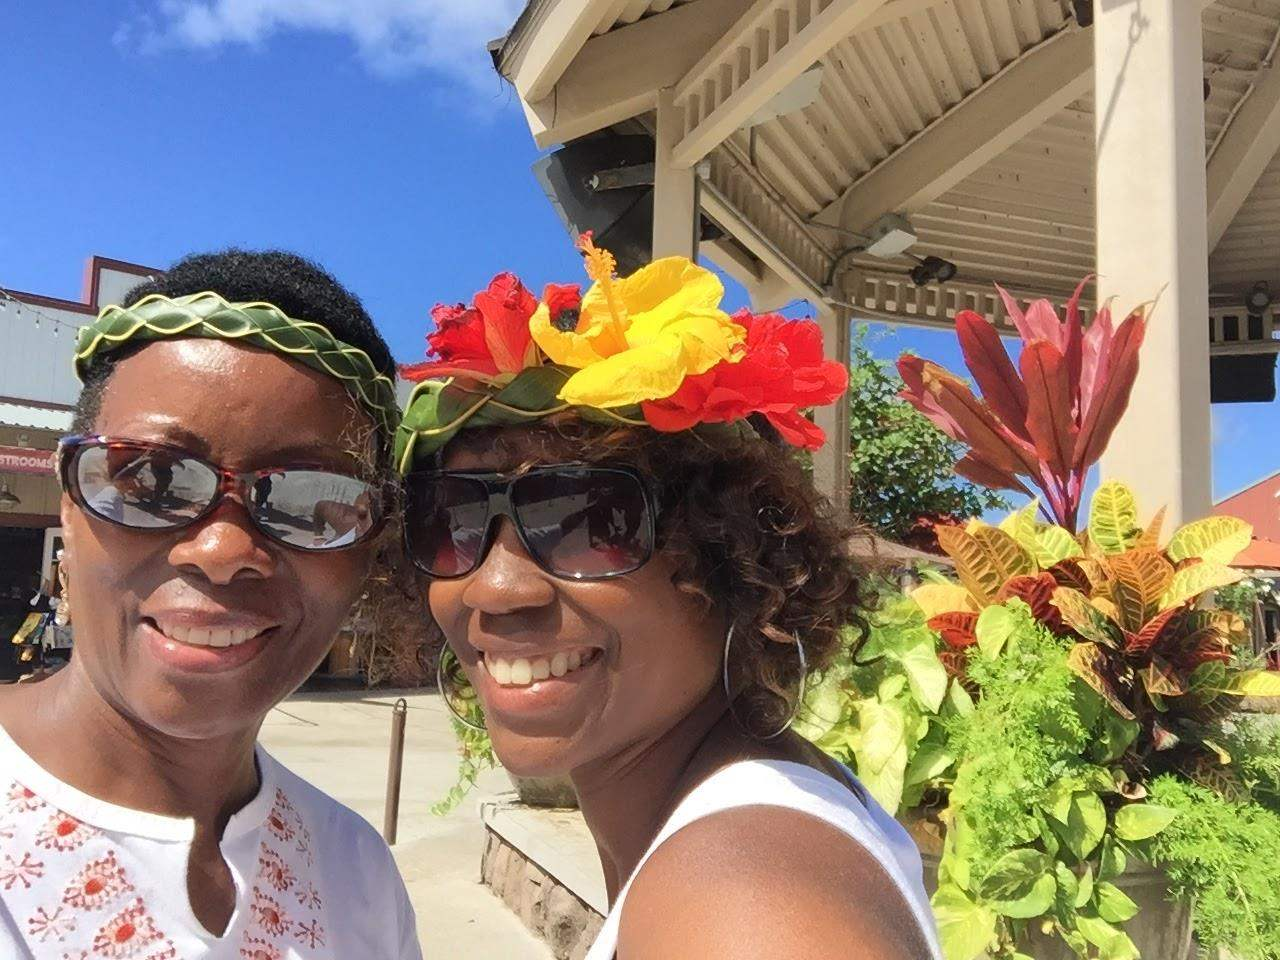 Shirley Seymour and her daughter, Ayisha Uri Seymour, enjoy a day at the Polynesian Cultural Center, Oahu, HI in September 2017.